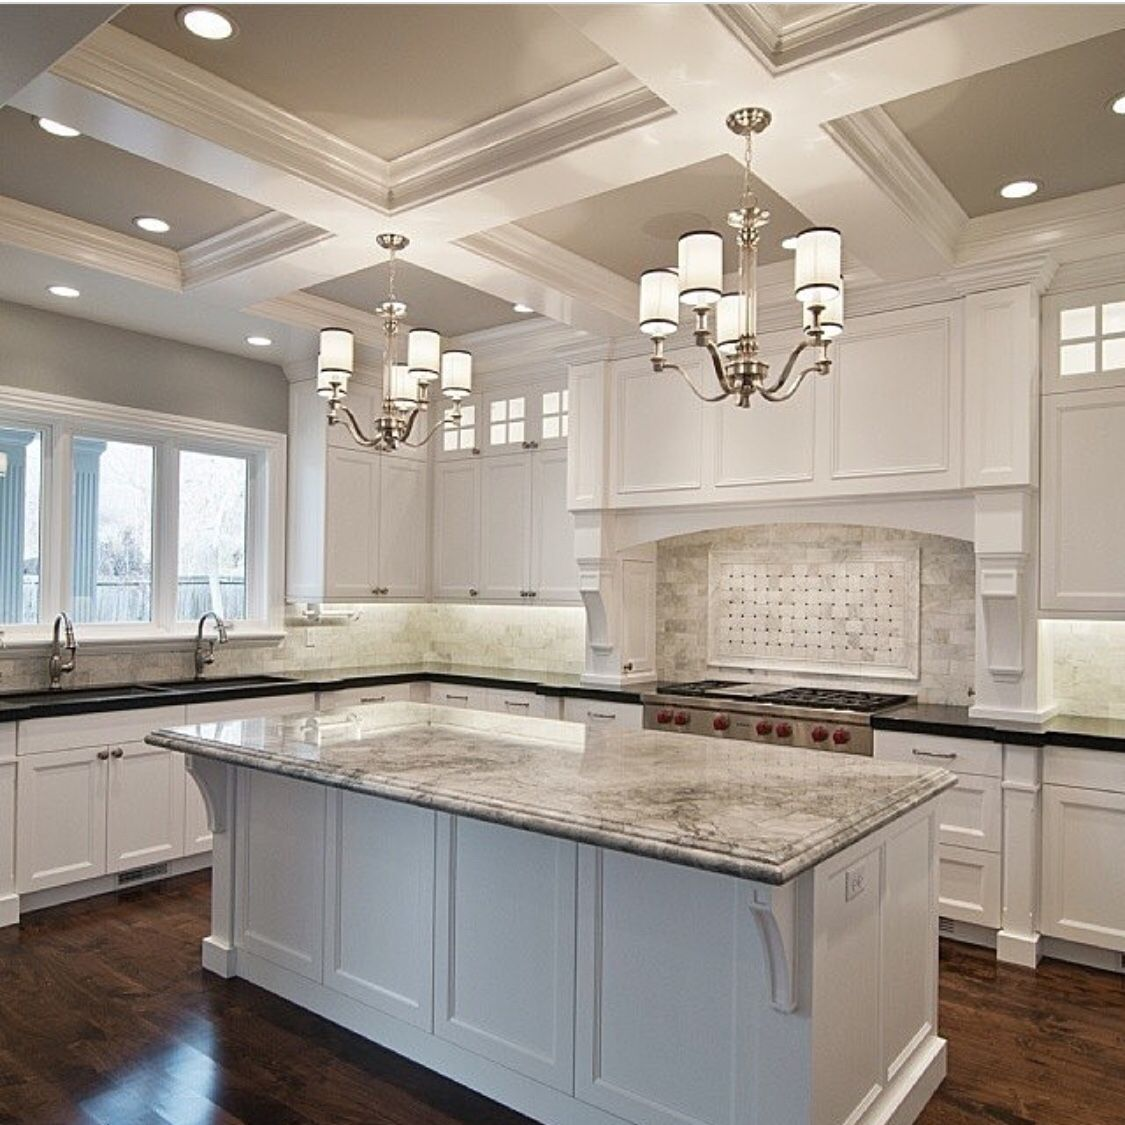 Remodel Kitchen With White Cabinets: White Kitchen. Dark Floors. Large Island. Island Design